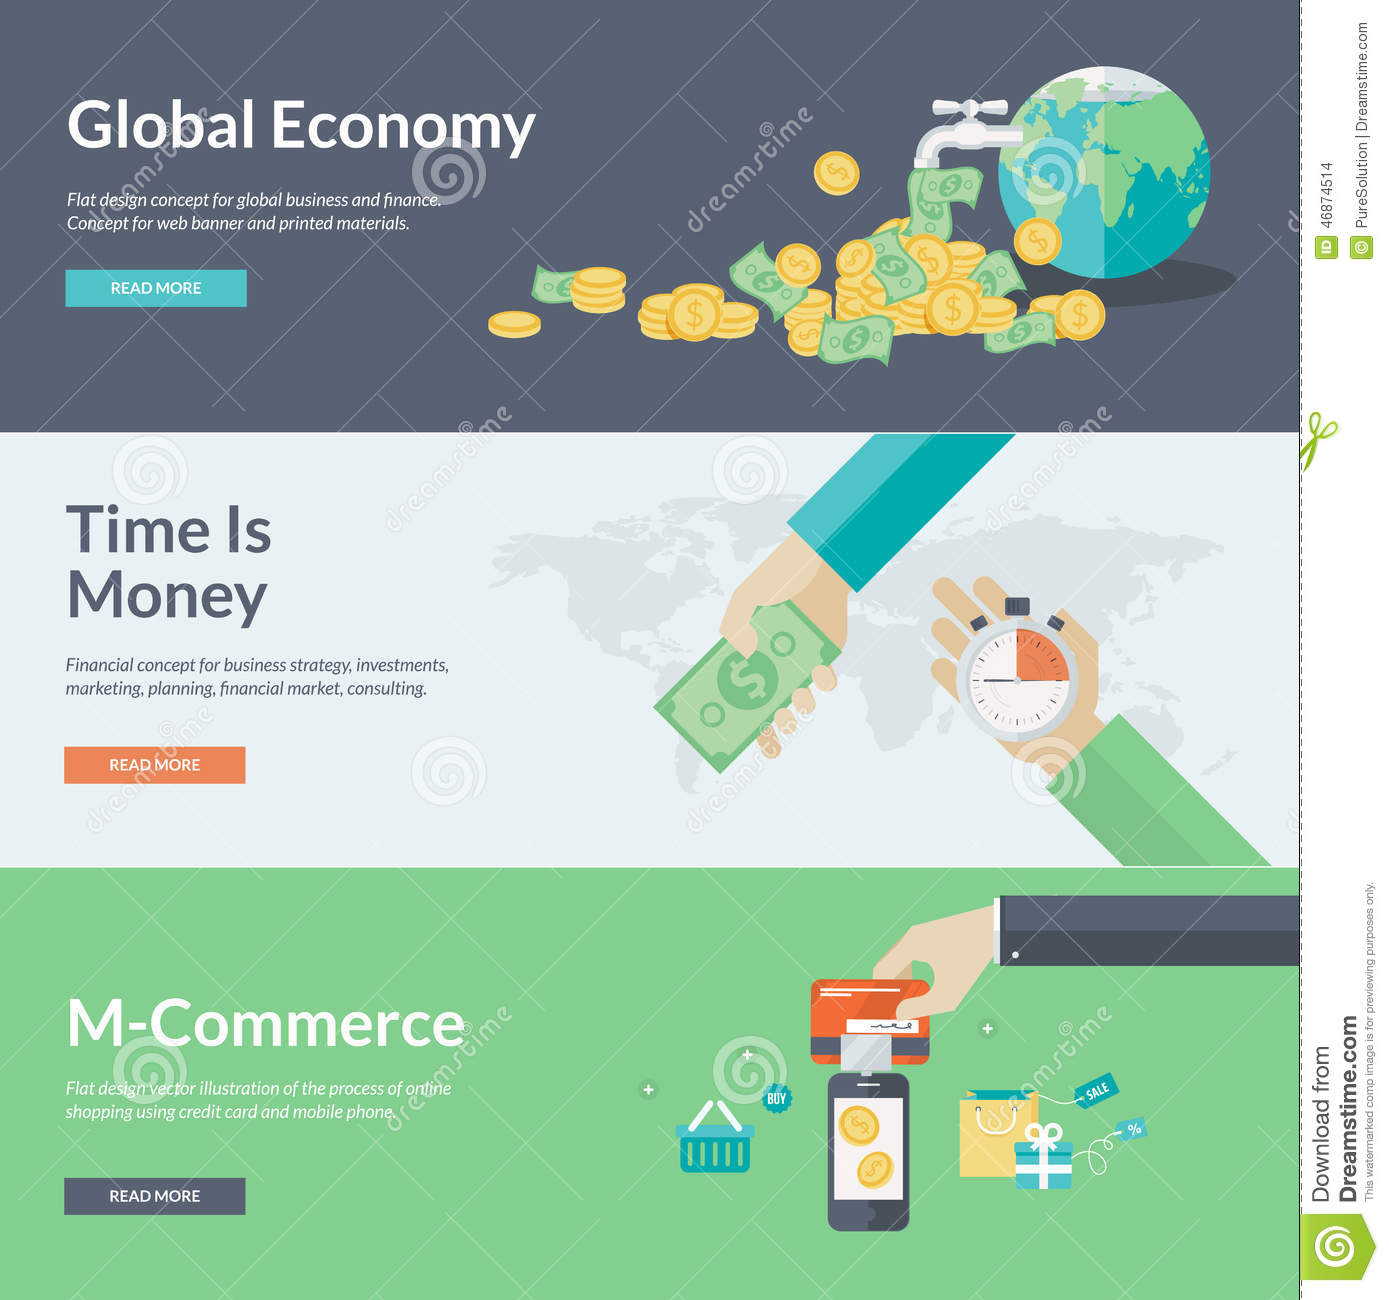 Business Finance: Flat Design Vector Illustration Concepts For Business And